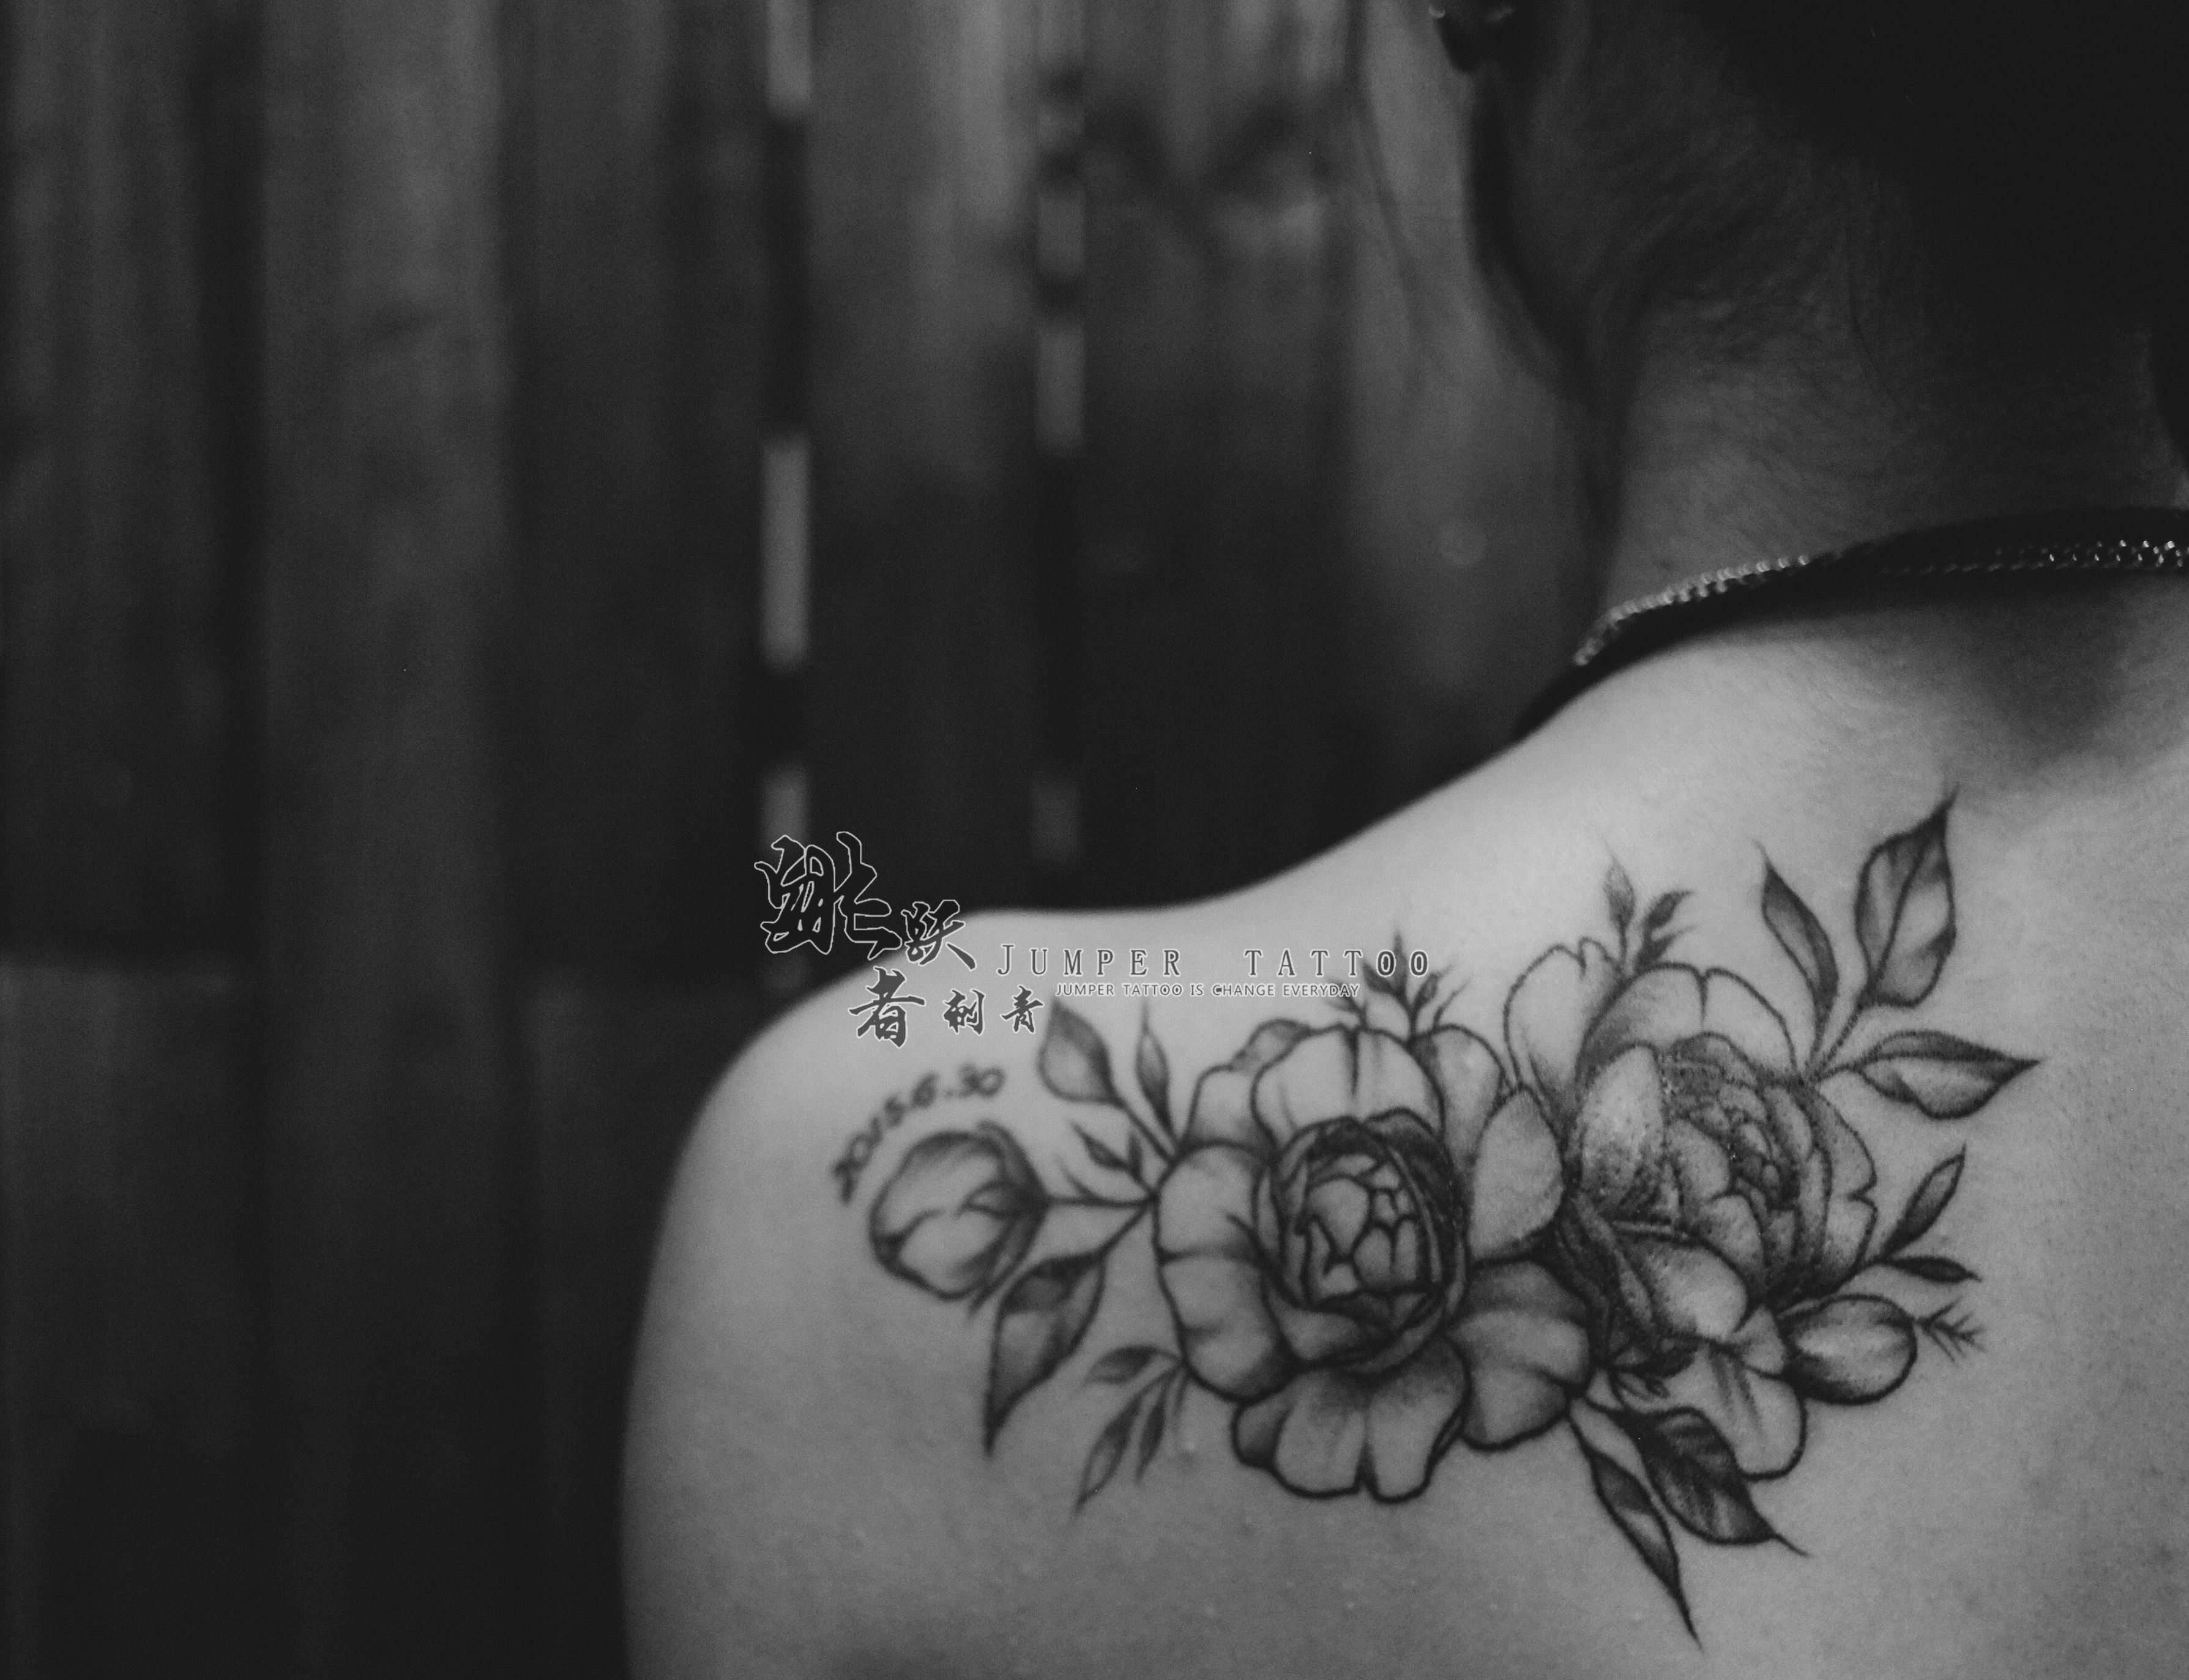 Flowers Tattoo On Back Shoulder Black And White Flower Tattoo Shoulder Back Tattoo Shoulder Tattoo